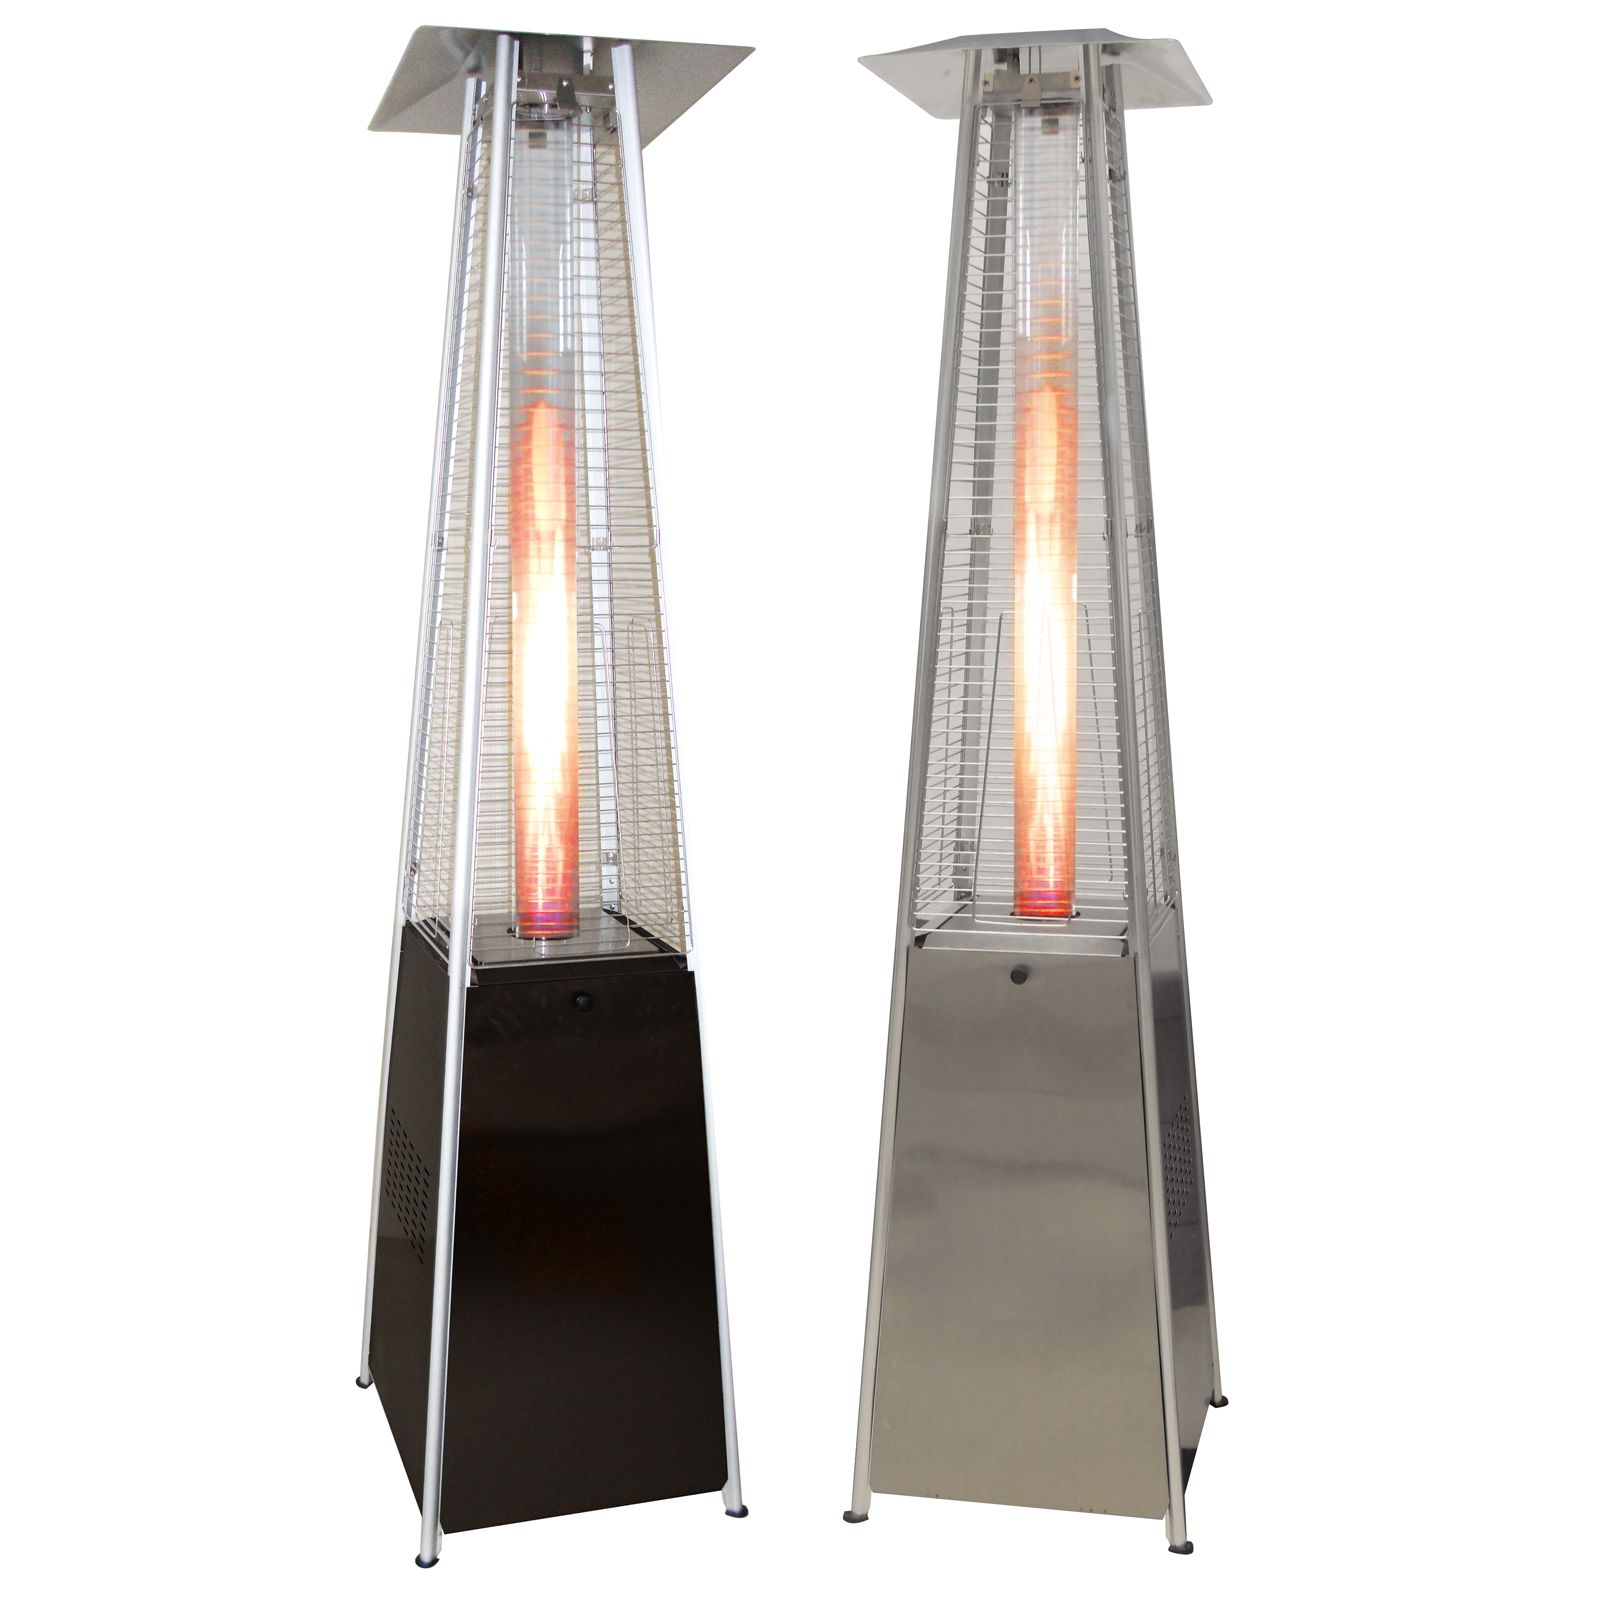 stainless flame steel heater quartz dp outdoors uk garden kw heaters amazon stylish outdoor tall patio glass tube co